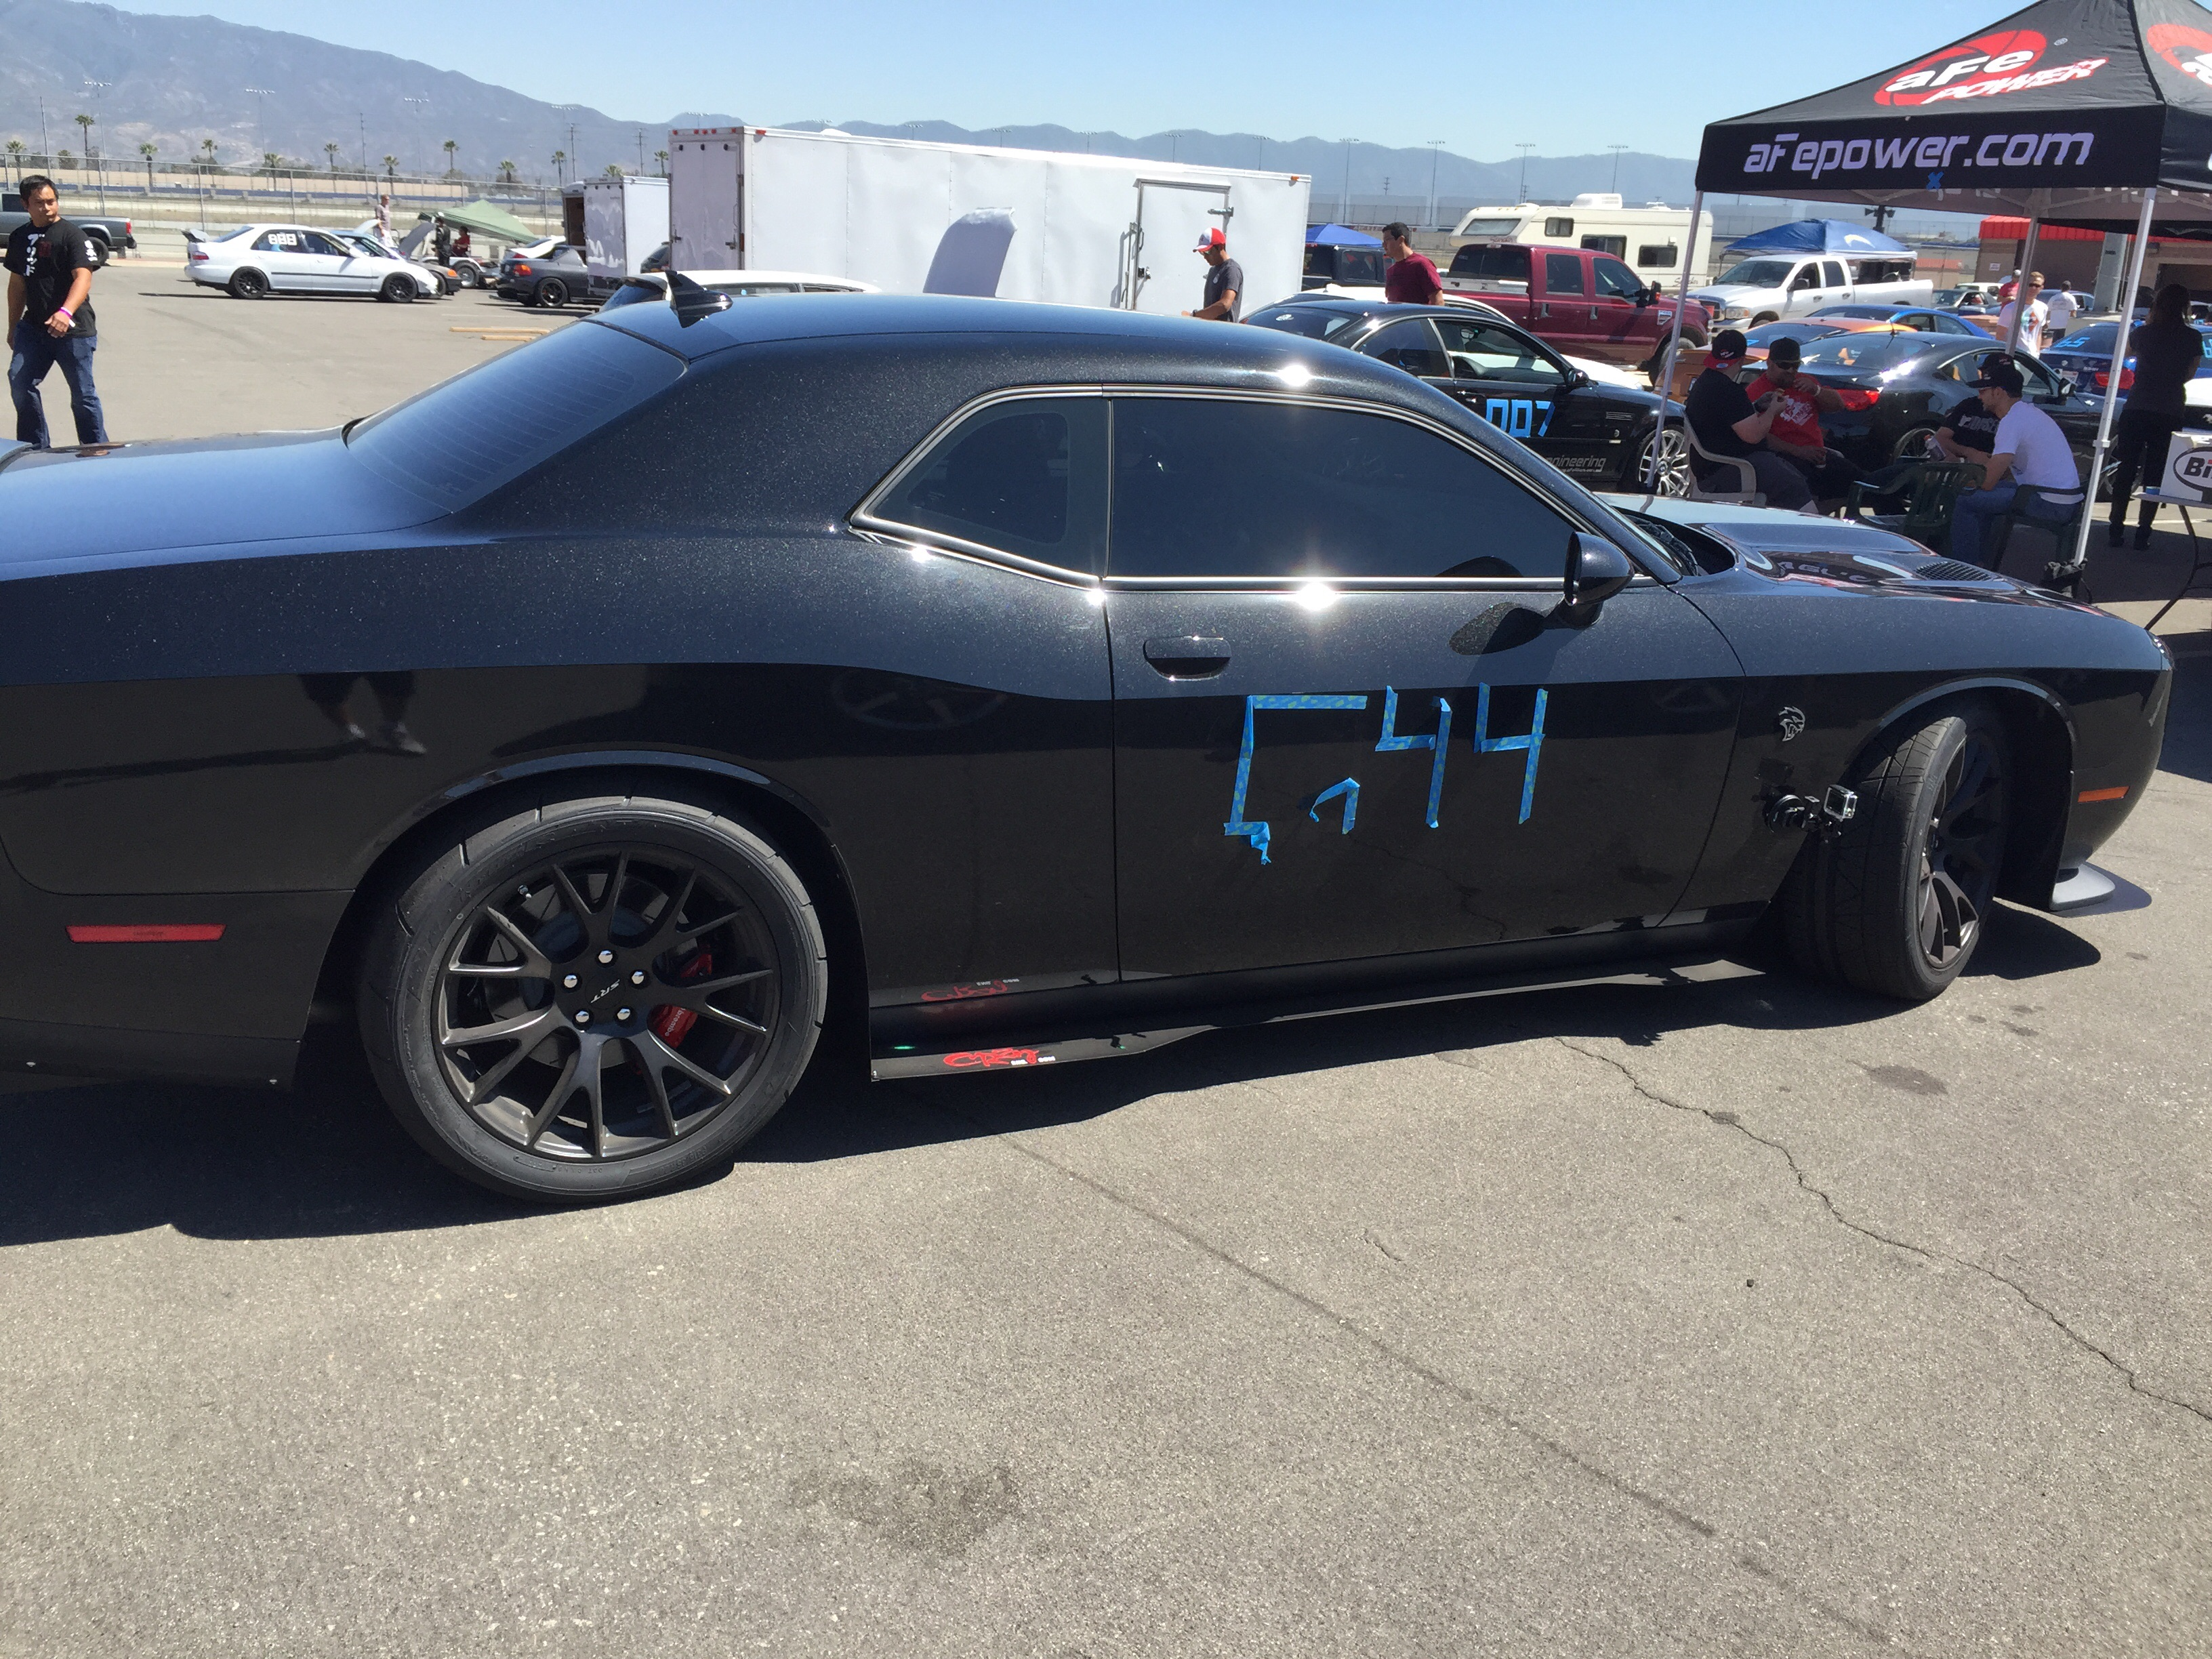 hellcat aero package with pictures srt hellcat forumSide Skirts For Dodge Challenger #16